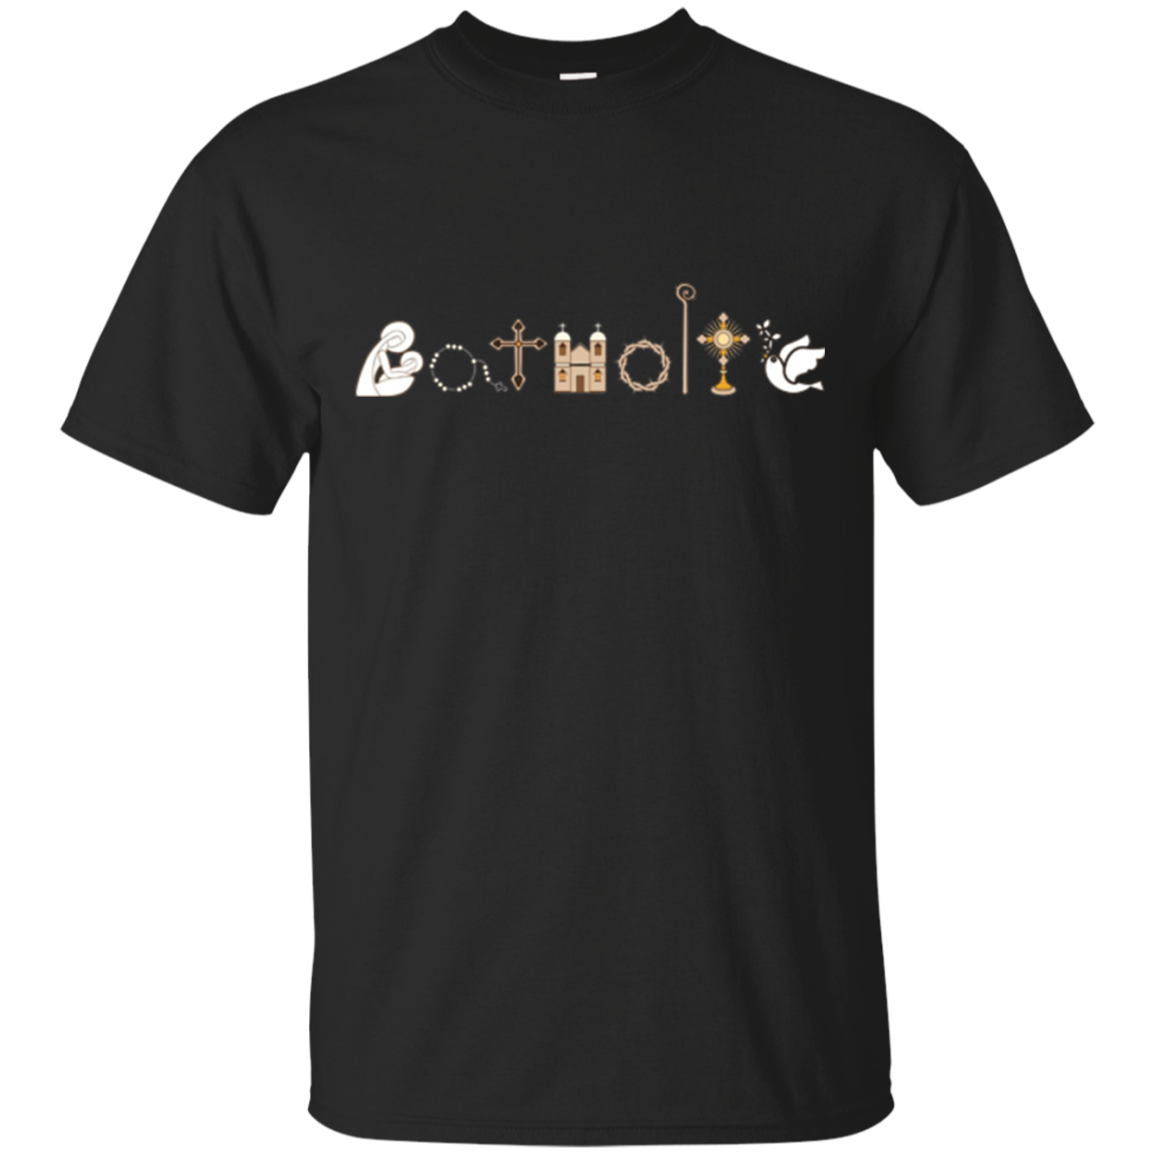 Religious Catholic Church Emblem Shirt